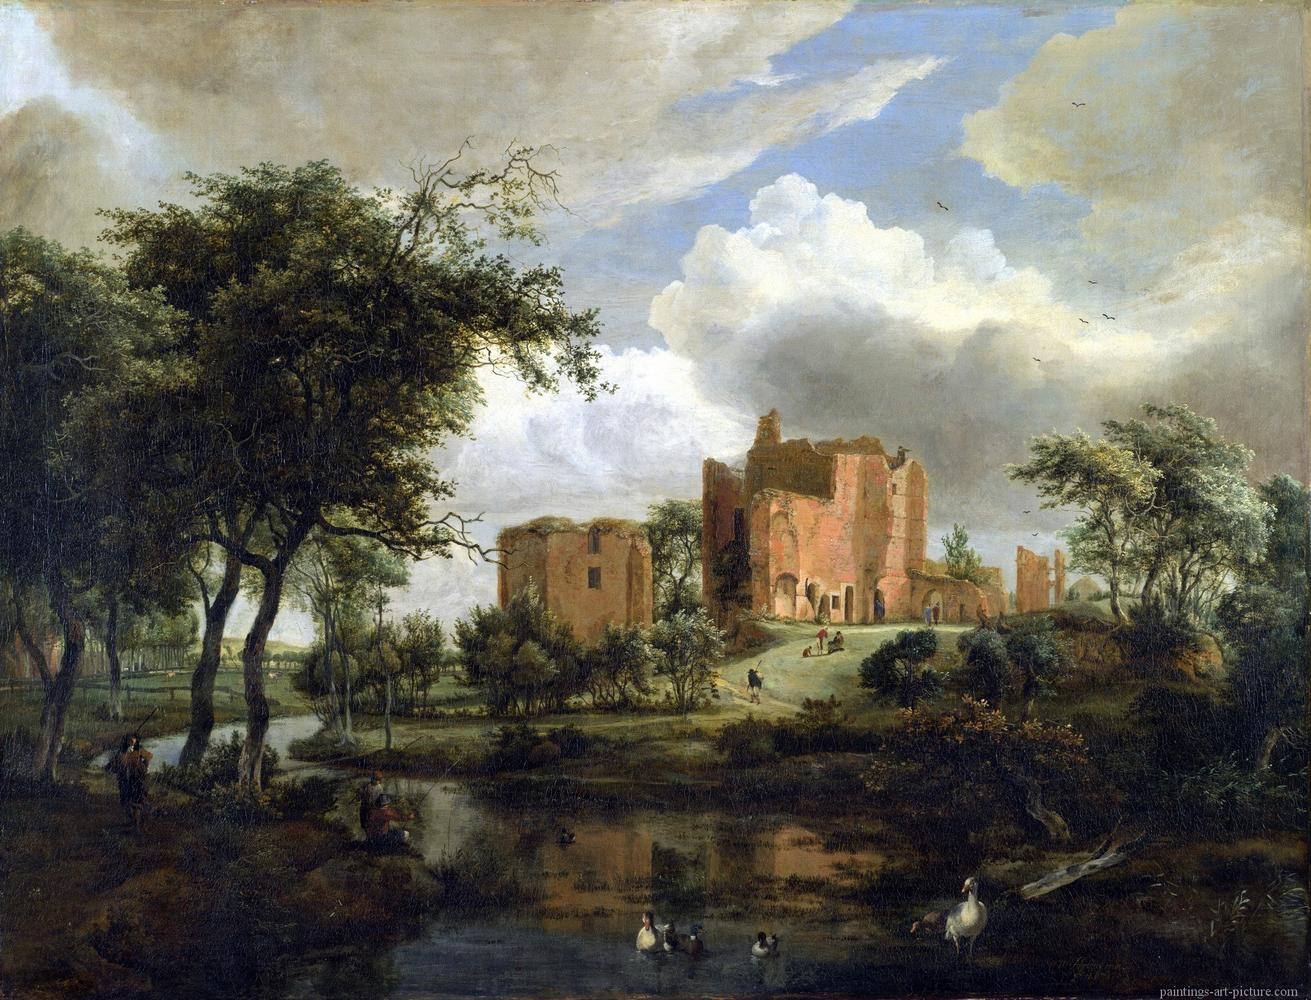 HOBBEMA-Meyndert1-The-Ruins-of-Brederode-Castle.jpg